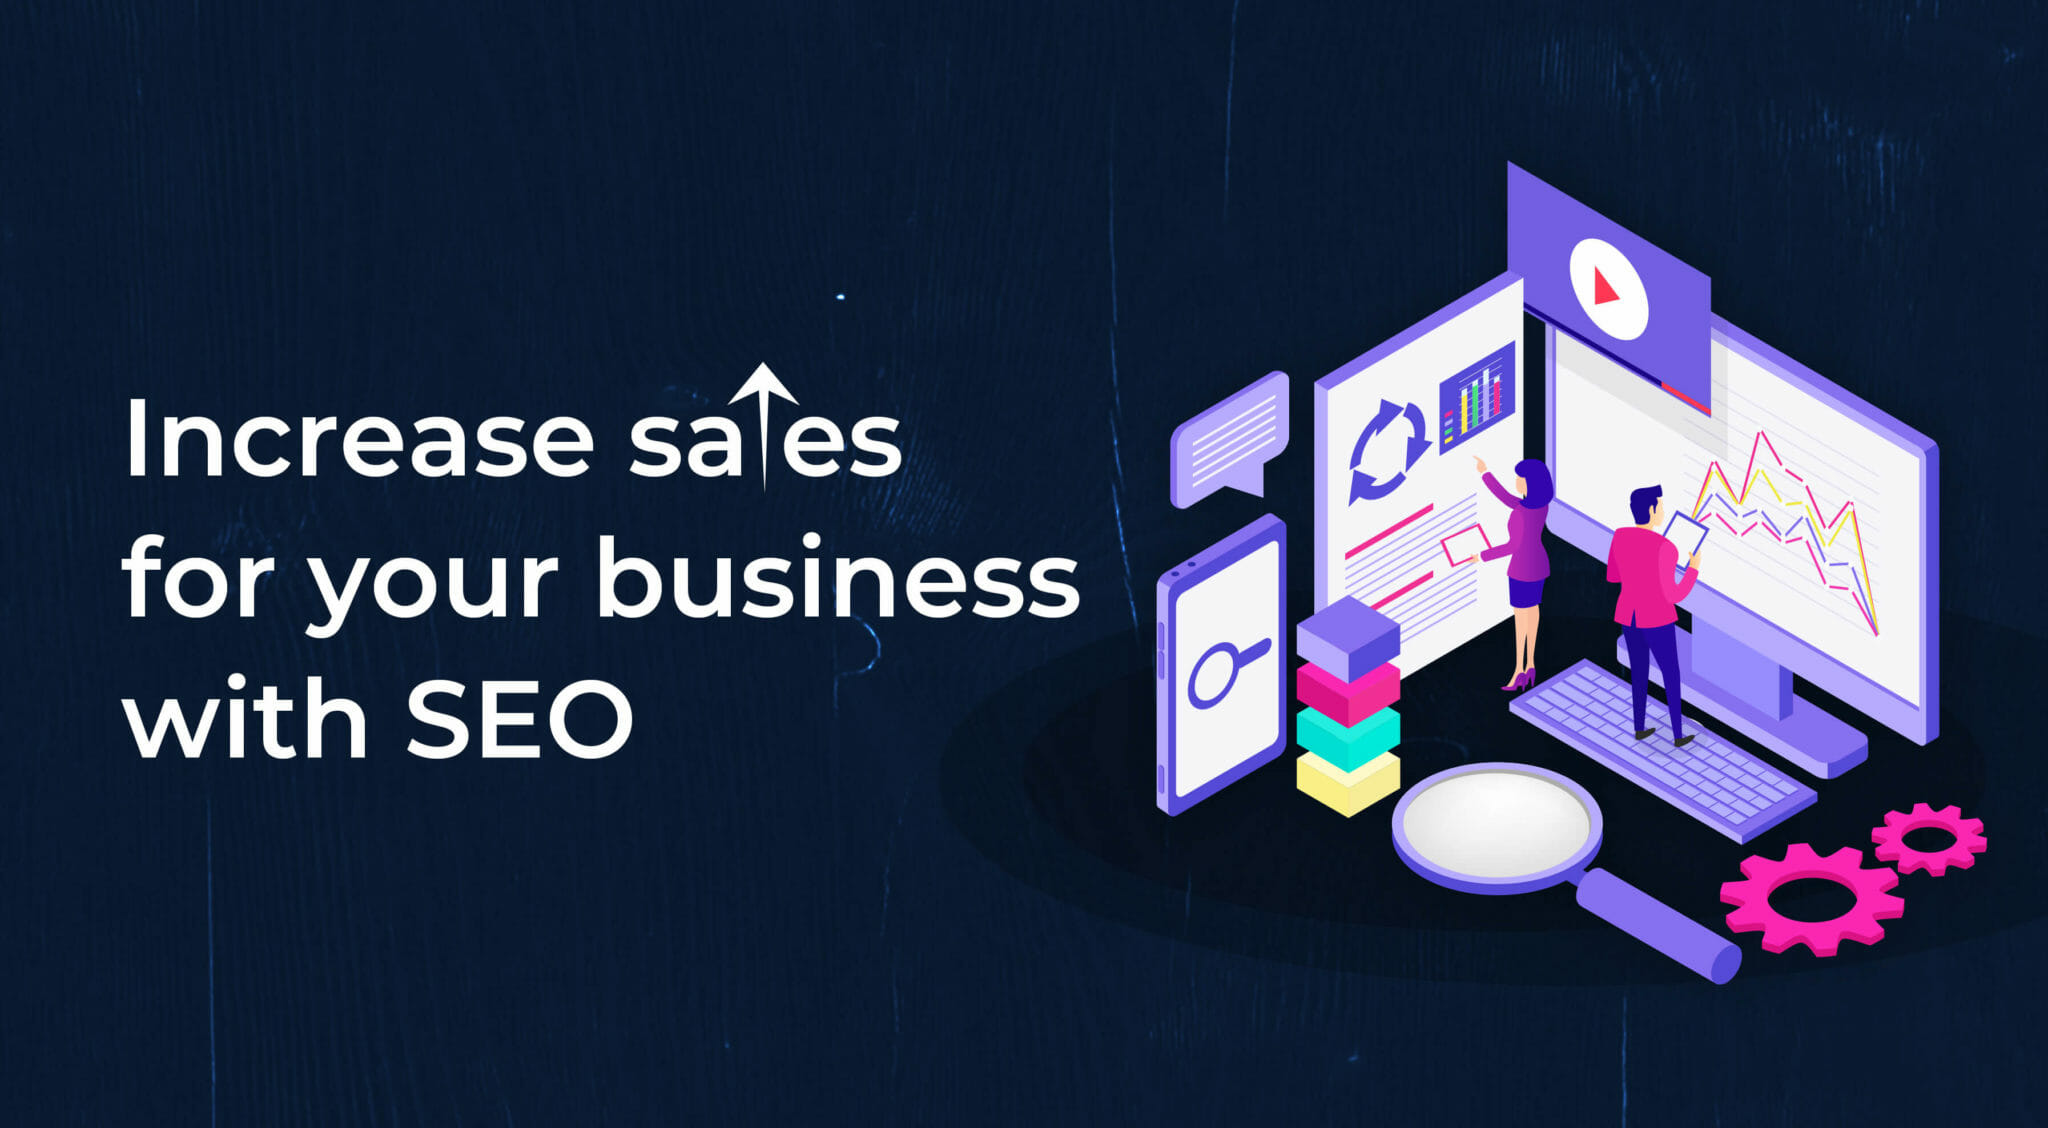 Increase Sales for Your Business with SEO